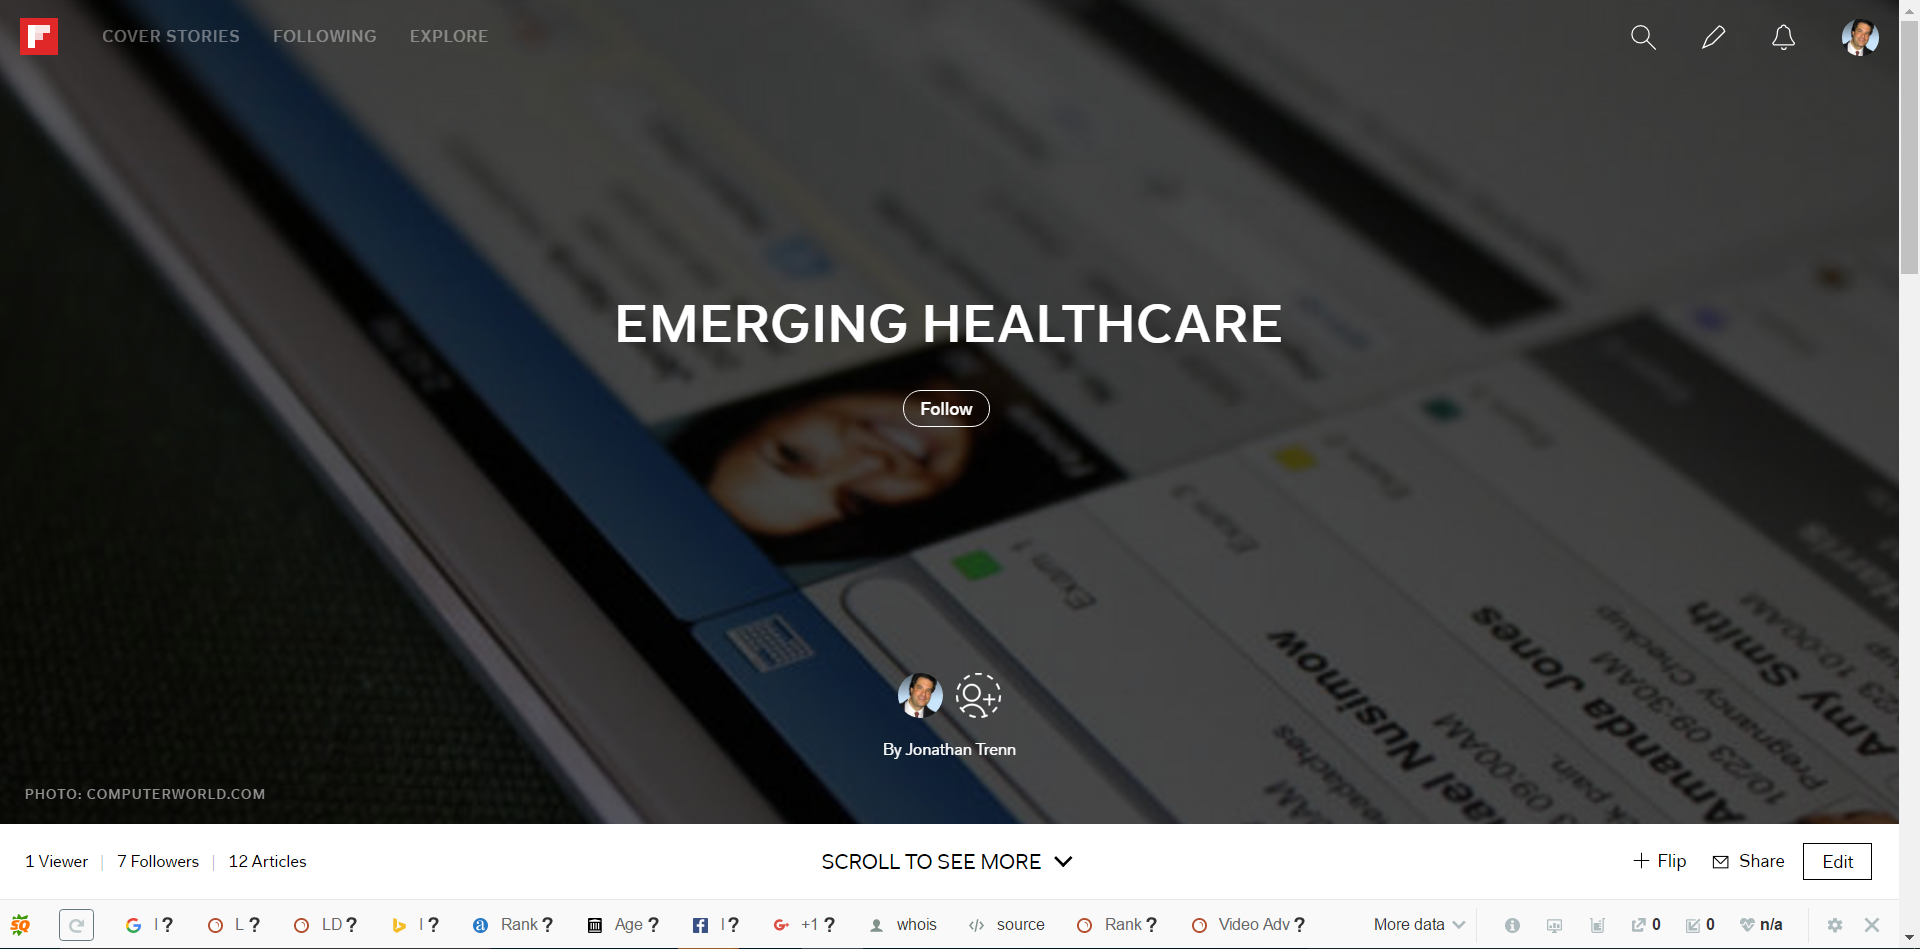 Emerging Healthcare